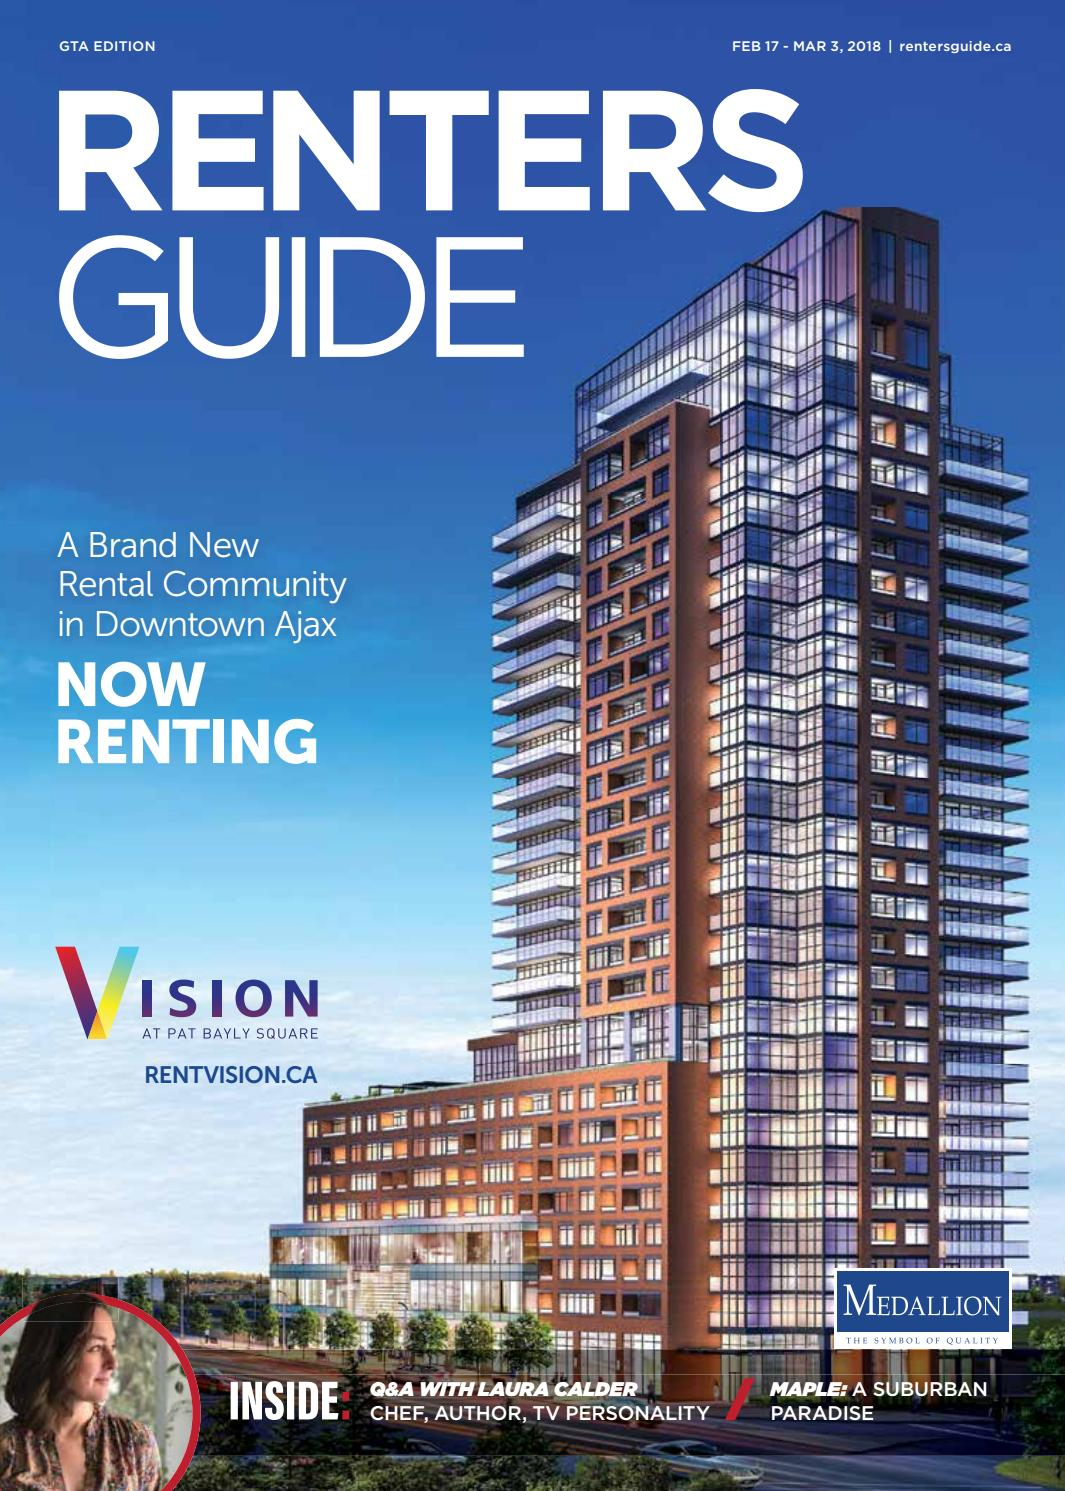 GTA Renters Guide - 17 Feb, 2018 by NextHome - issuu